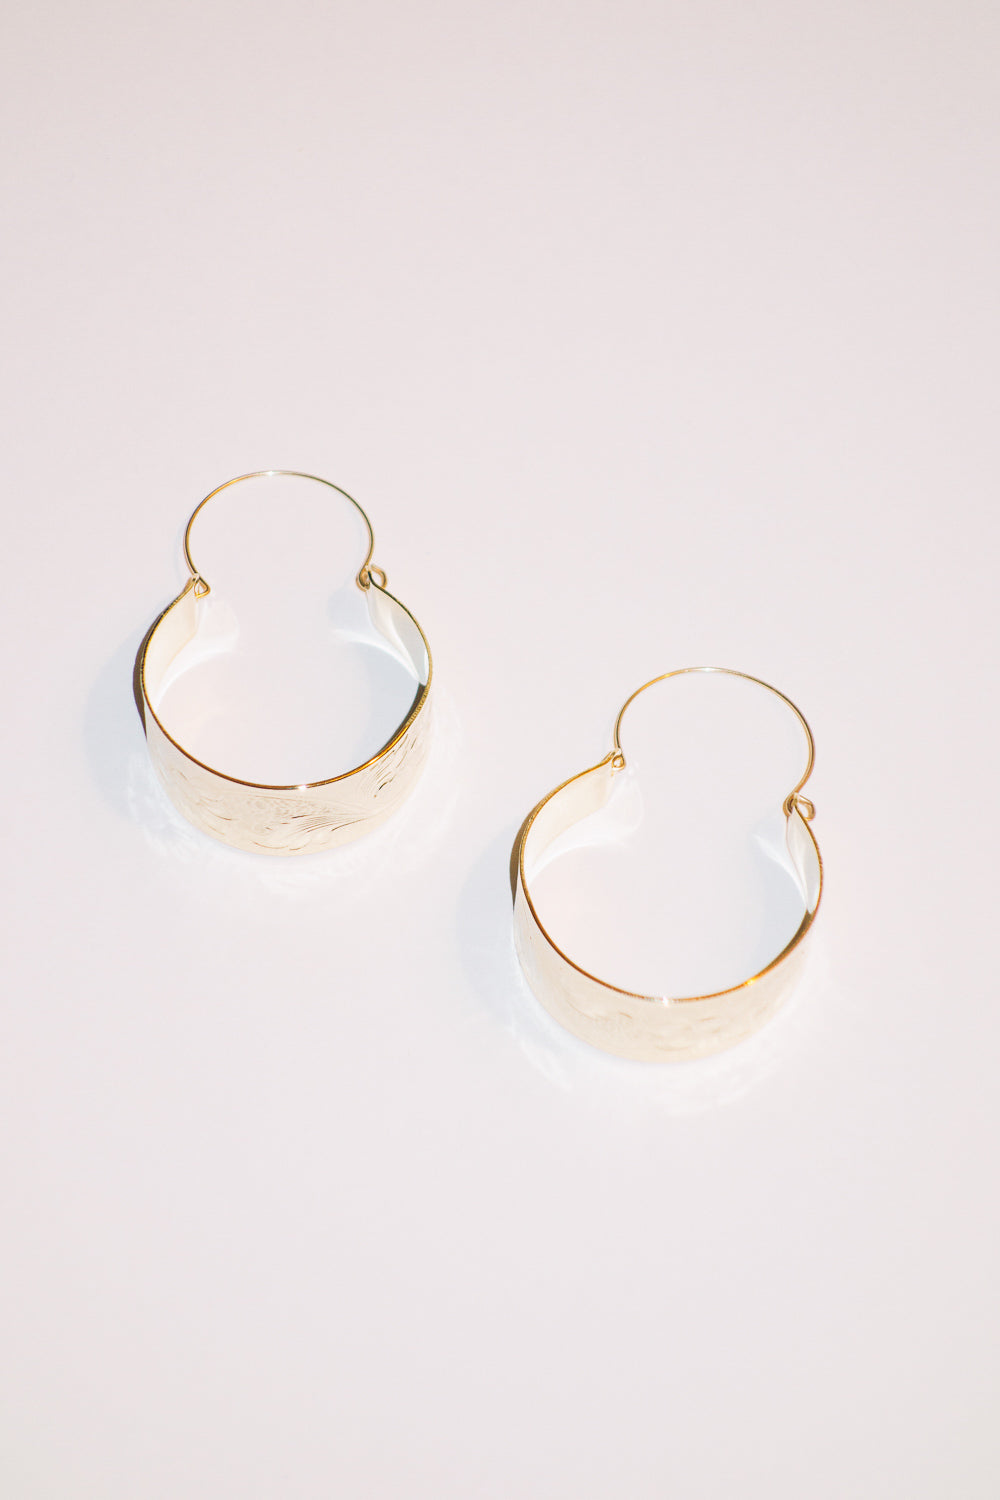 Cali Flower Pattern Oversized Hoop Earrings | 18K Gold Plating | Janna Conner